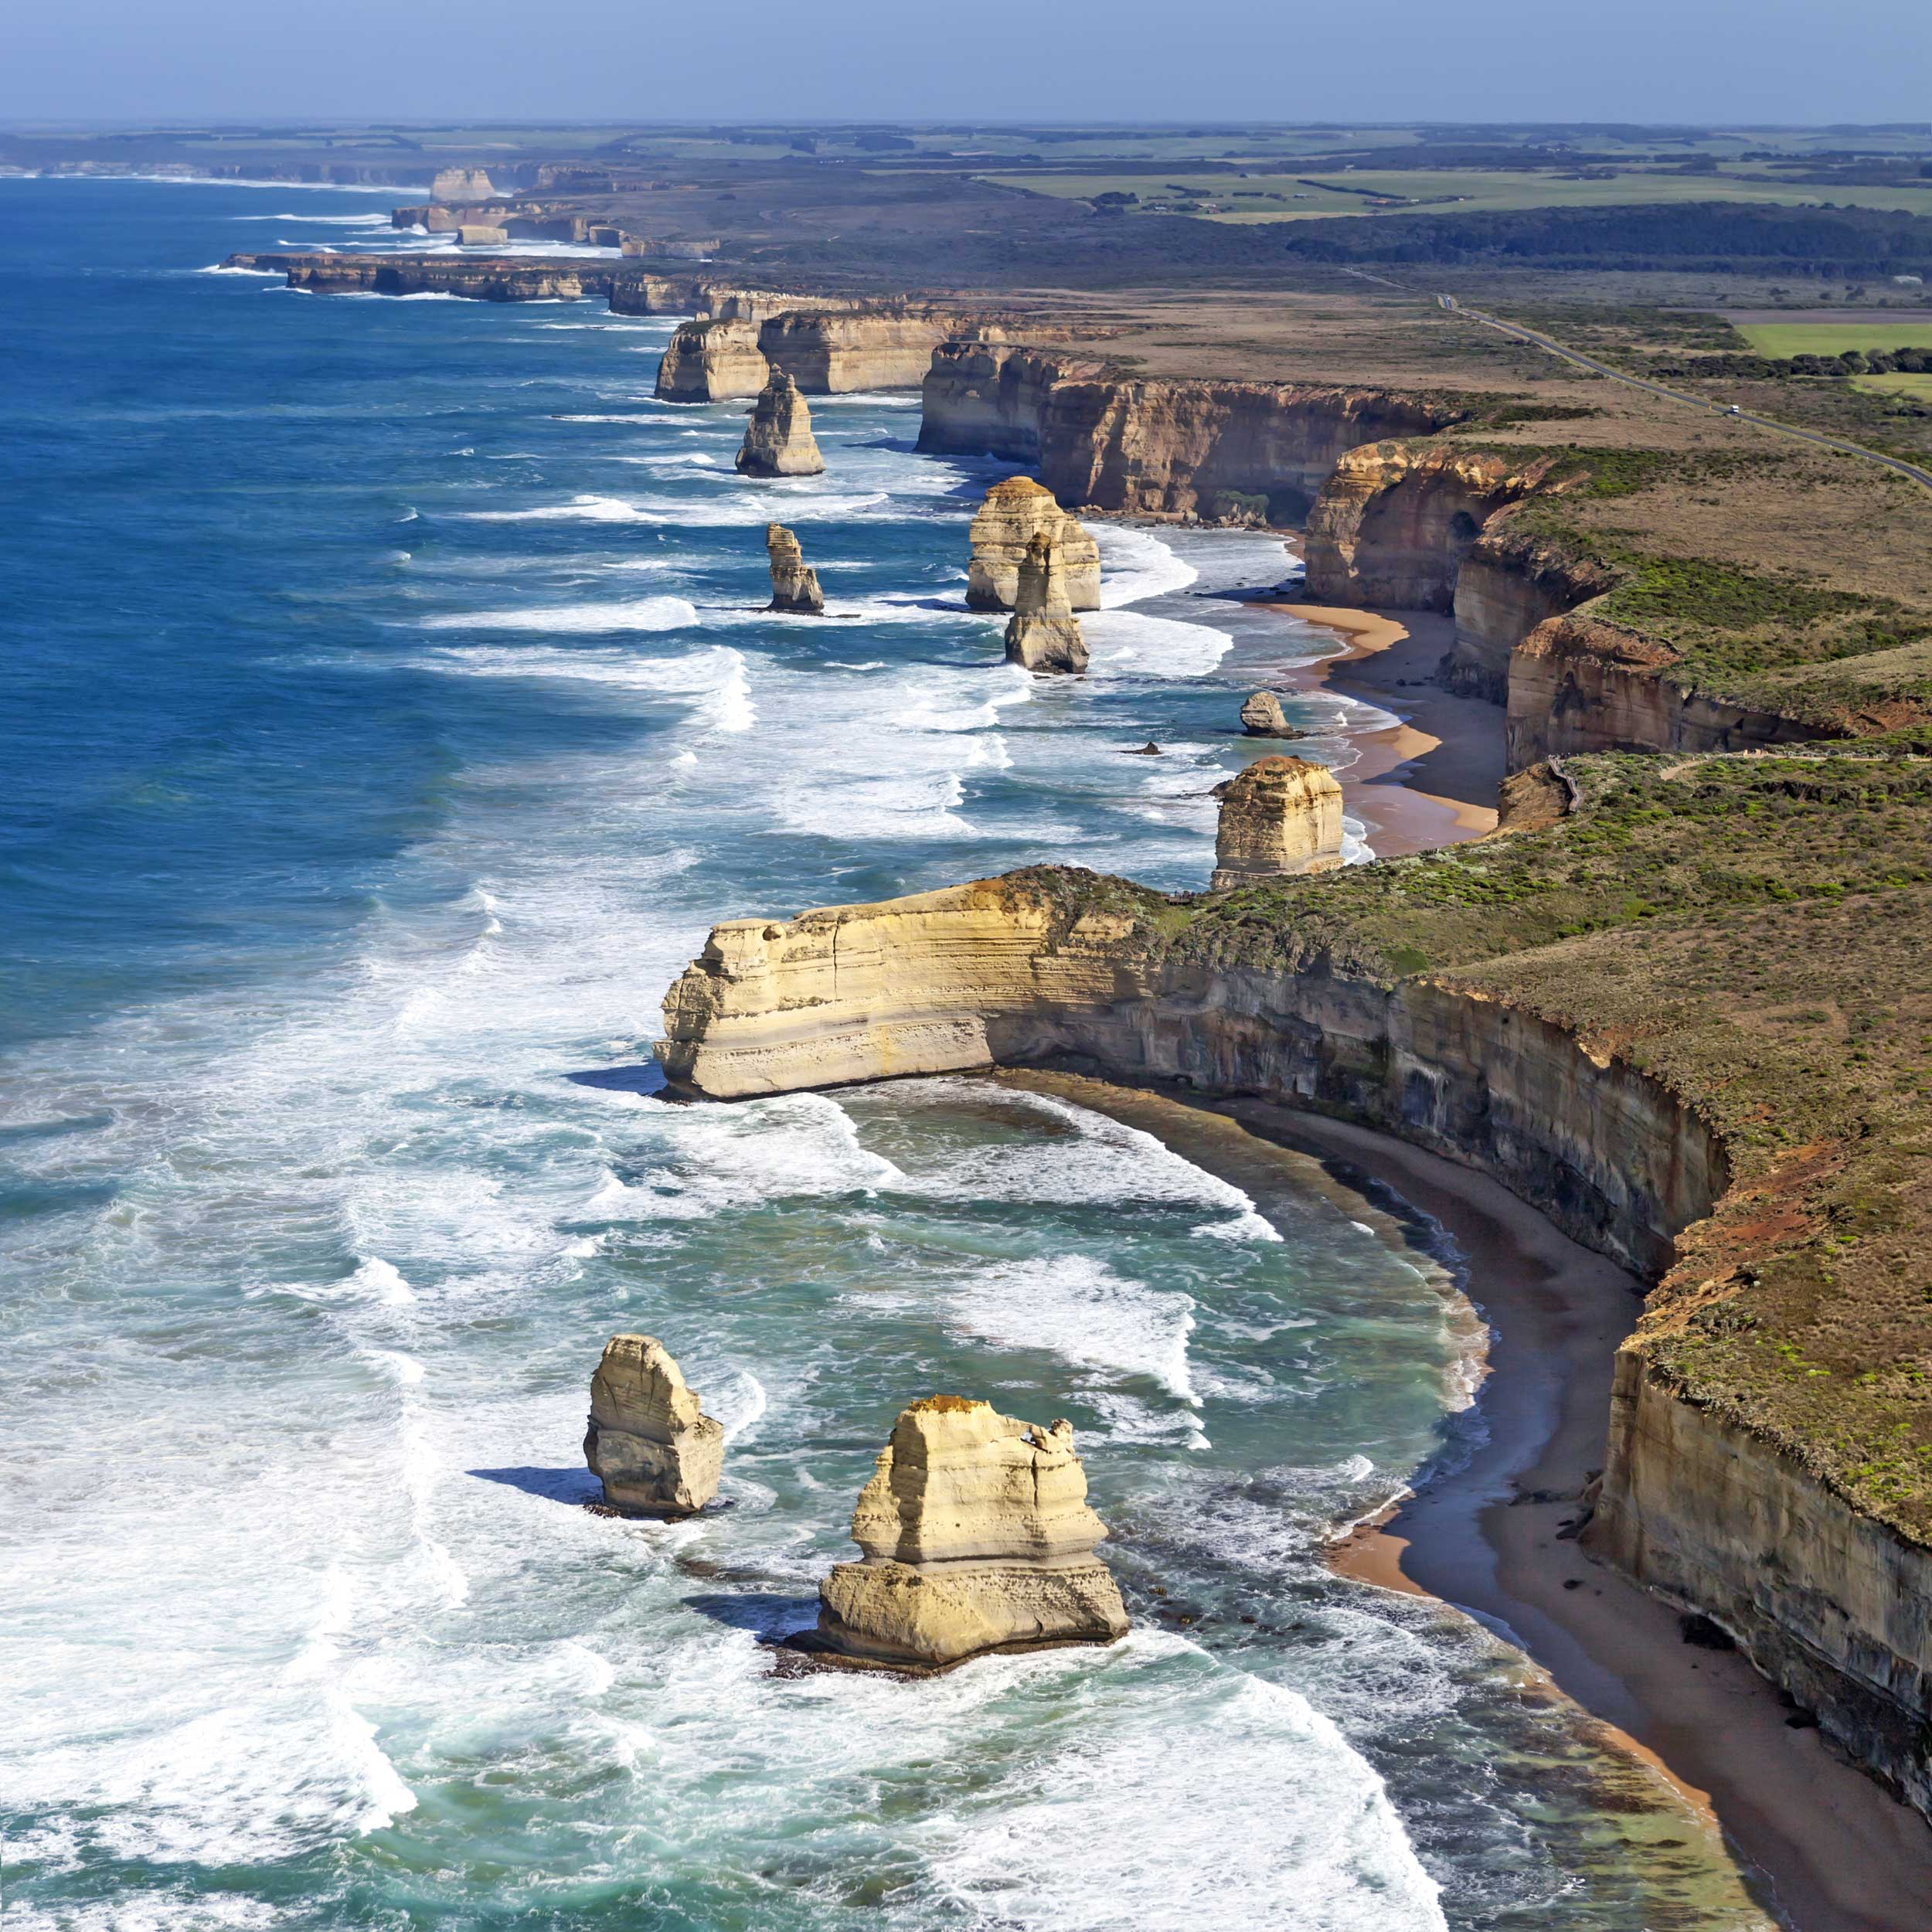 Cliffs extending down a coastline with limestone stacks in the foamy sea, Australia